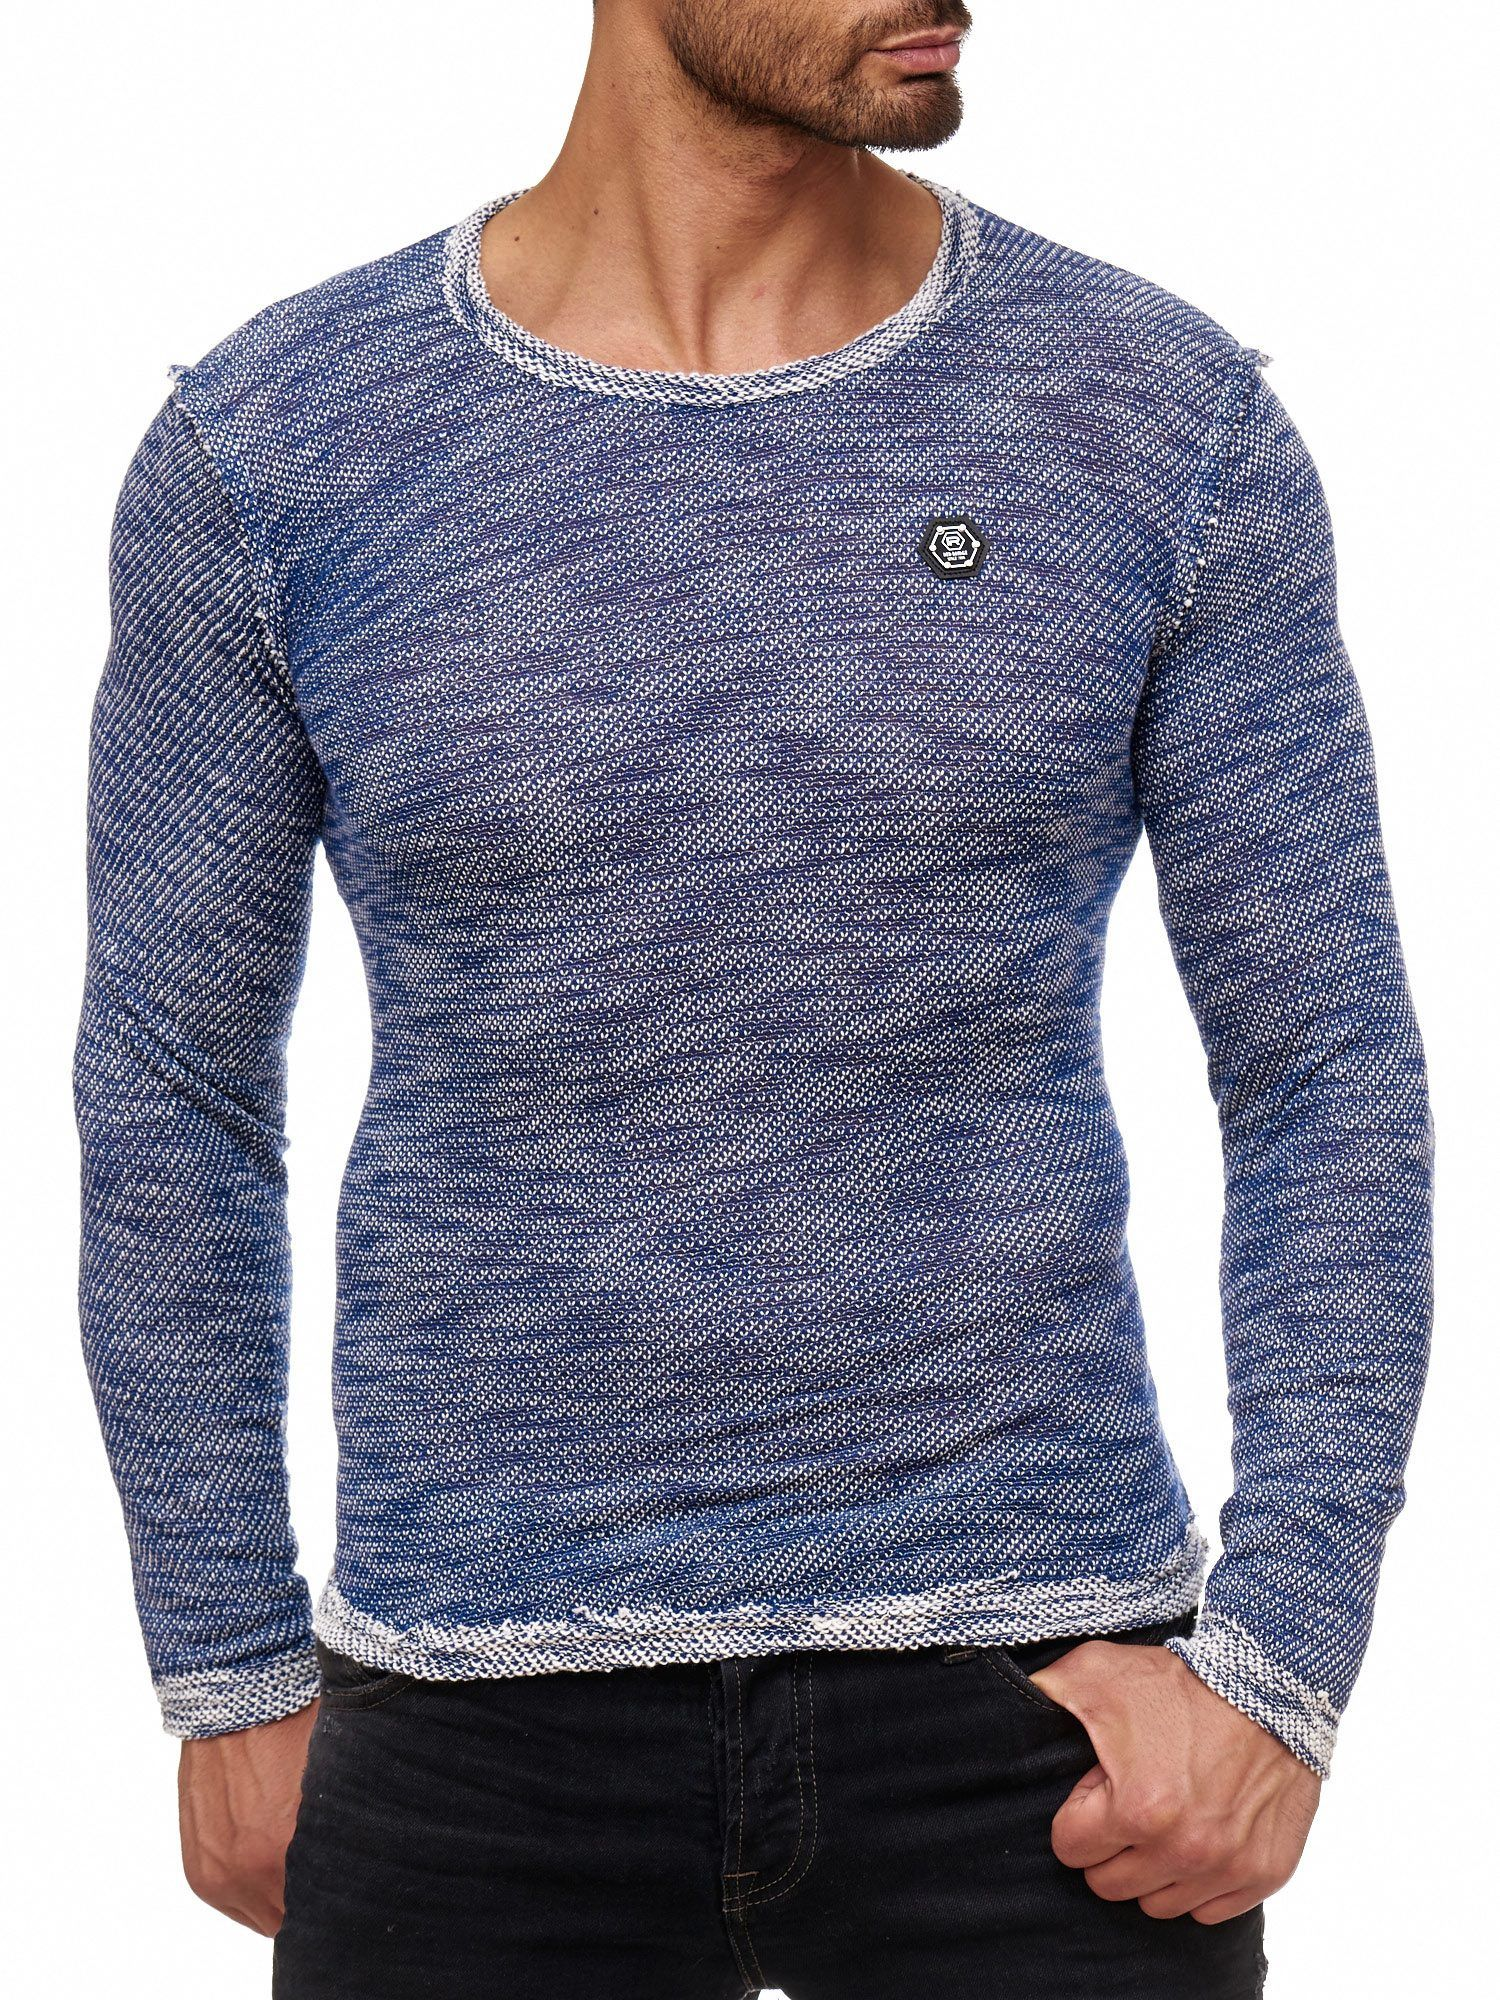 Red Bridge Herren Fresh Color Pullover Strickpullover Longsleeve Indigo! Red  Bridge Herren Strickpullover Design  5f76a2207a